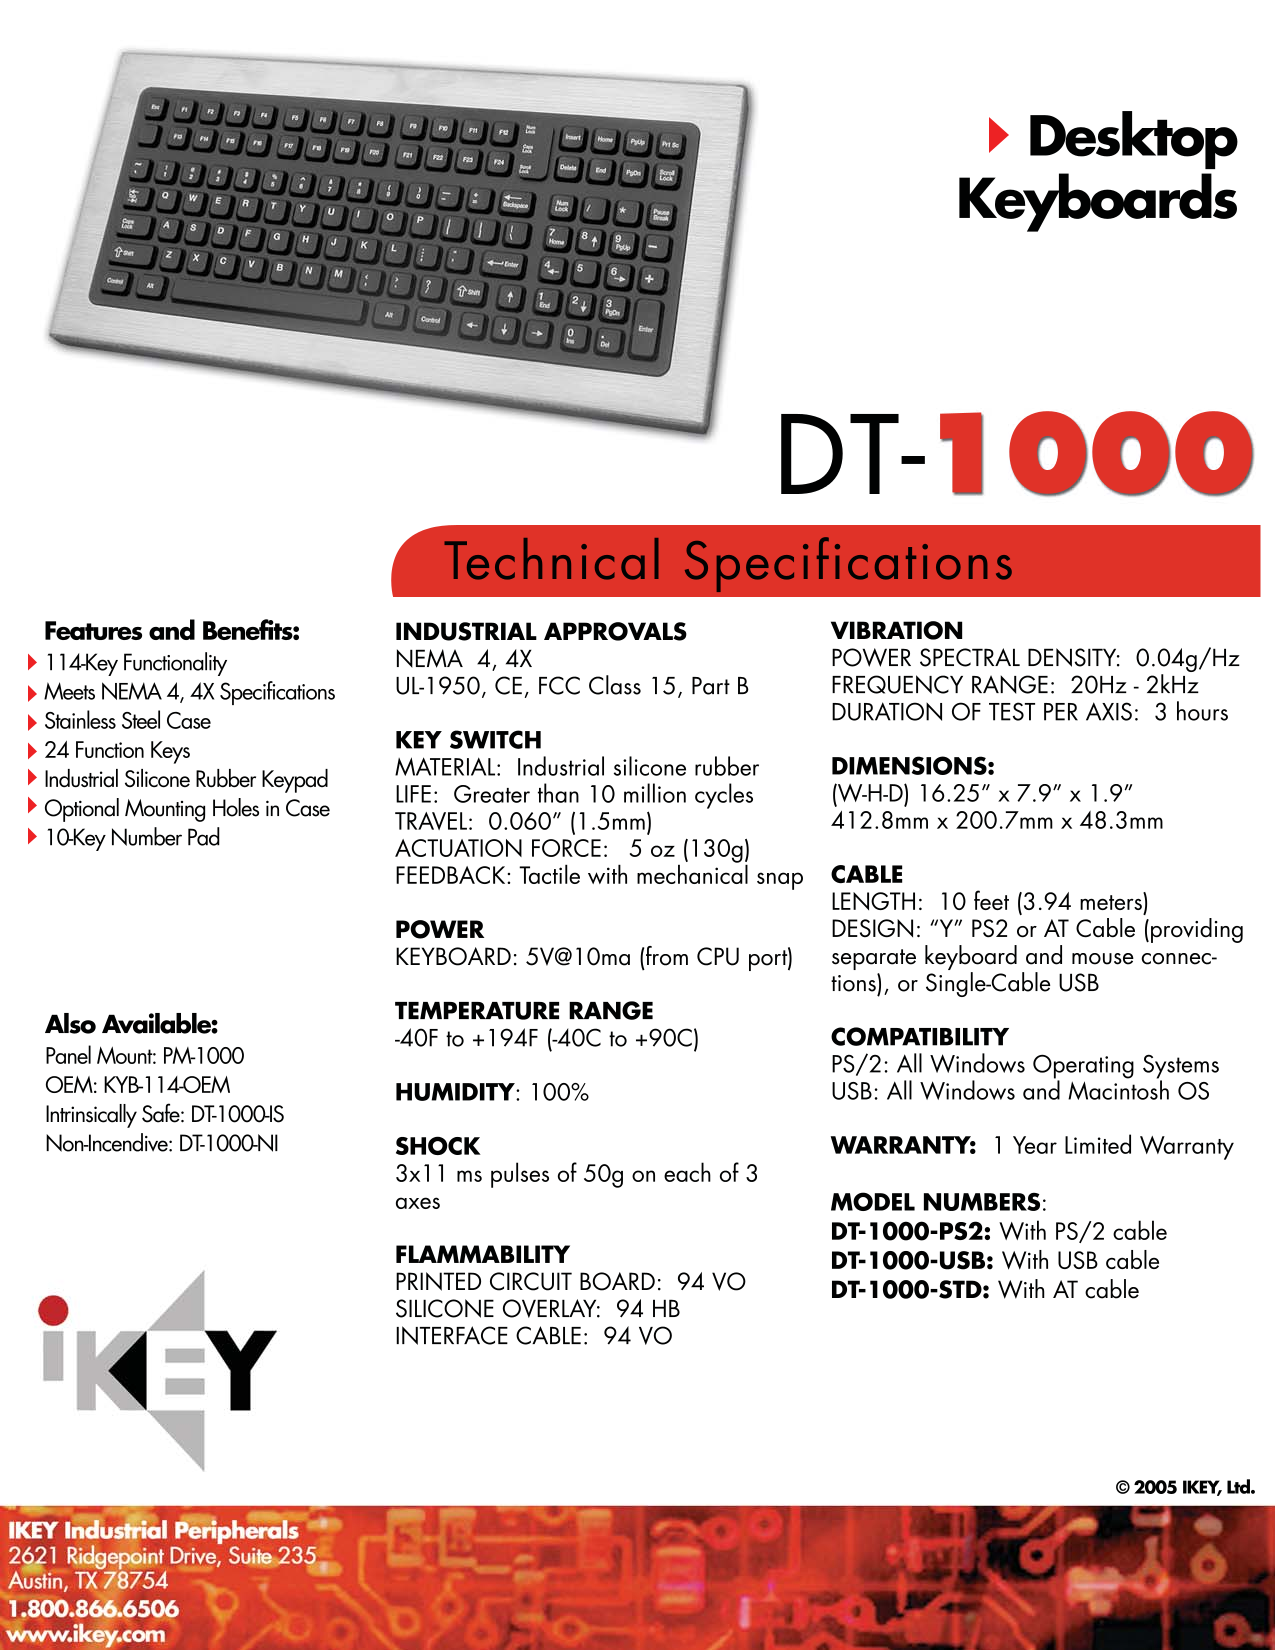 pdf for iKey Keyboard DT-1000 manual